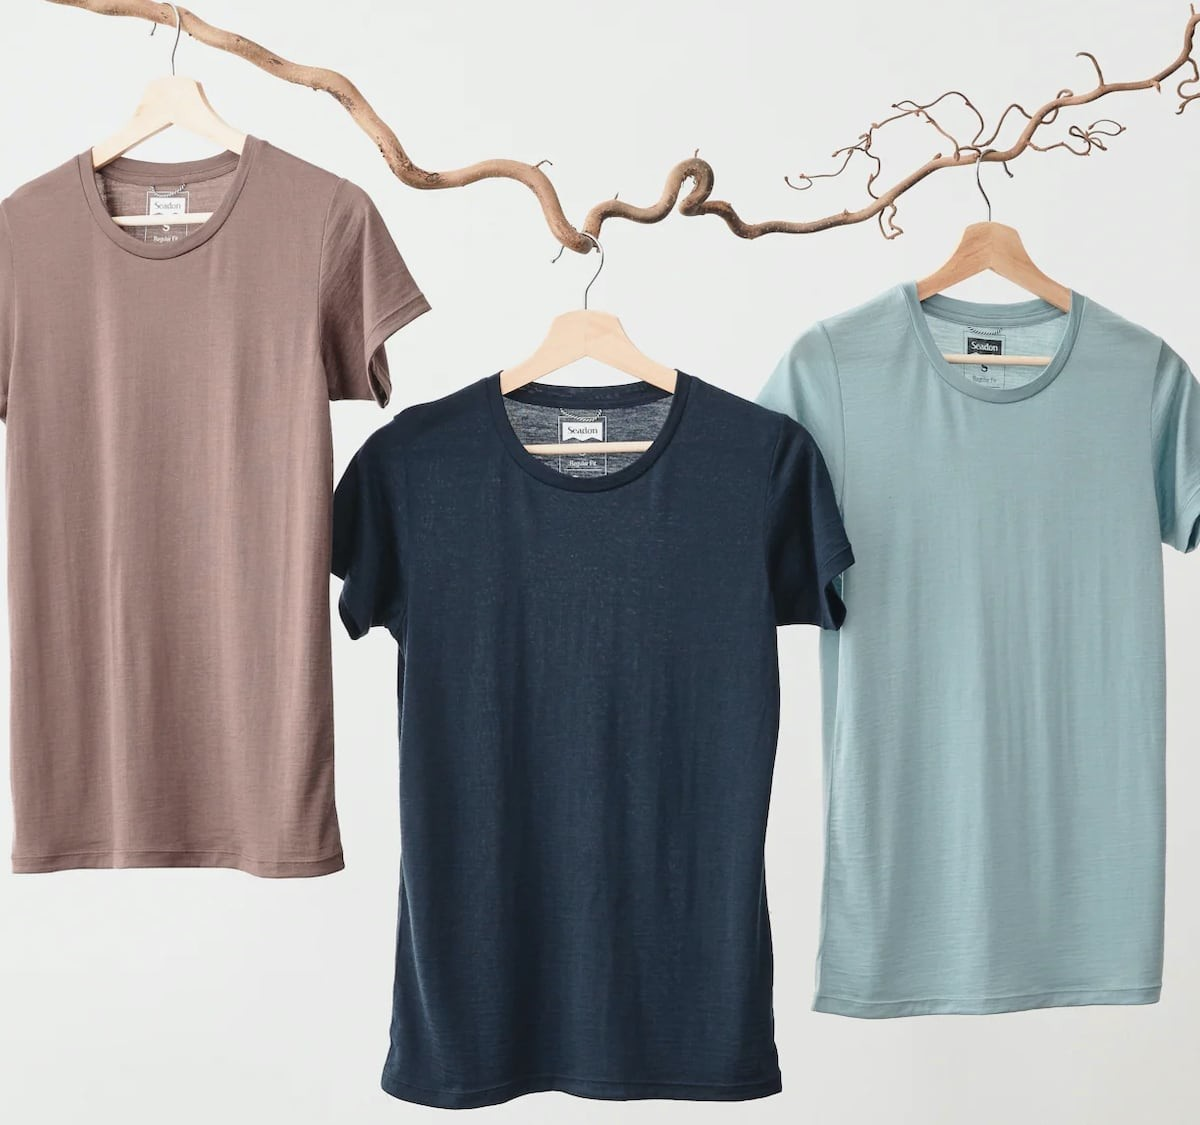 Seadon Eco-Friendly T-Shirts are made with three incredibly soft cooling fabrics